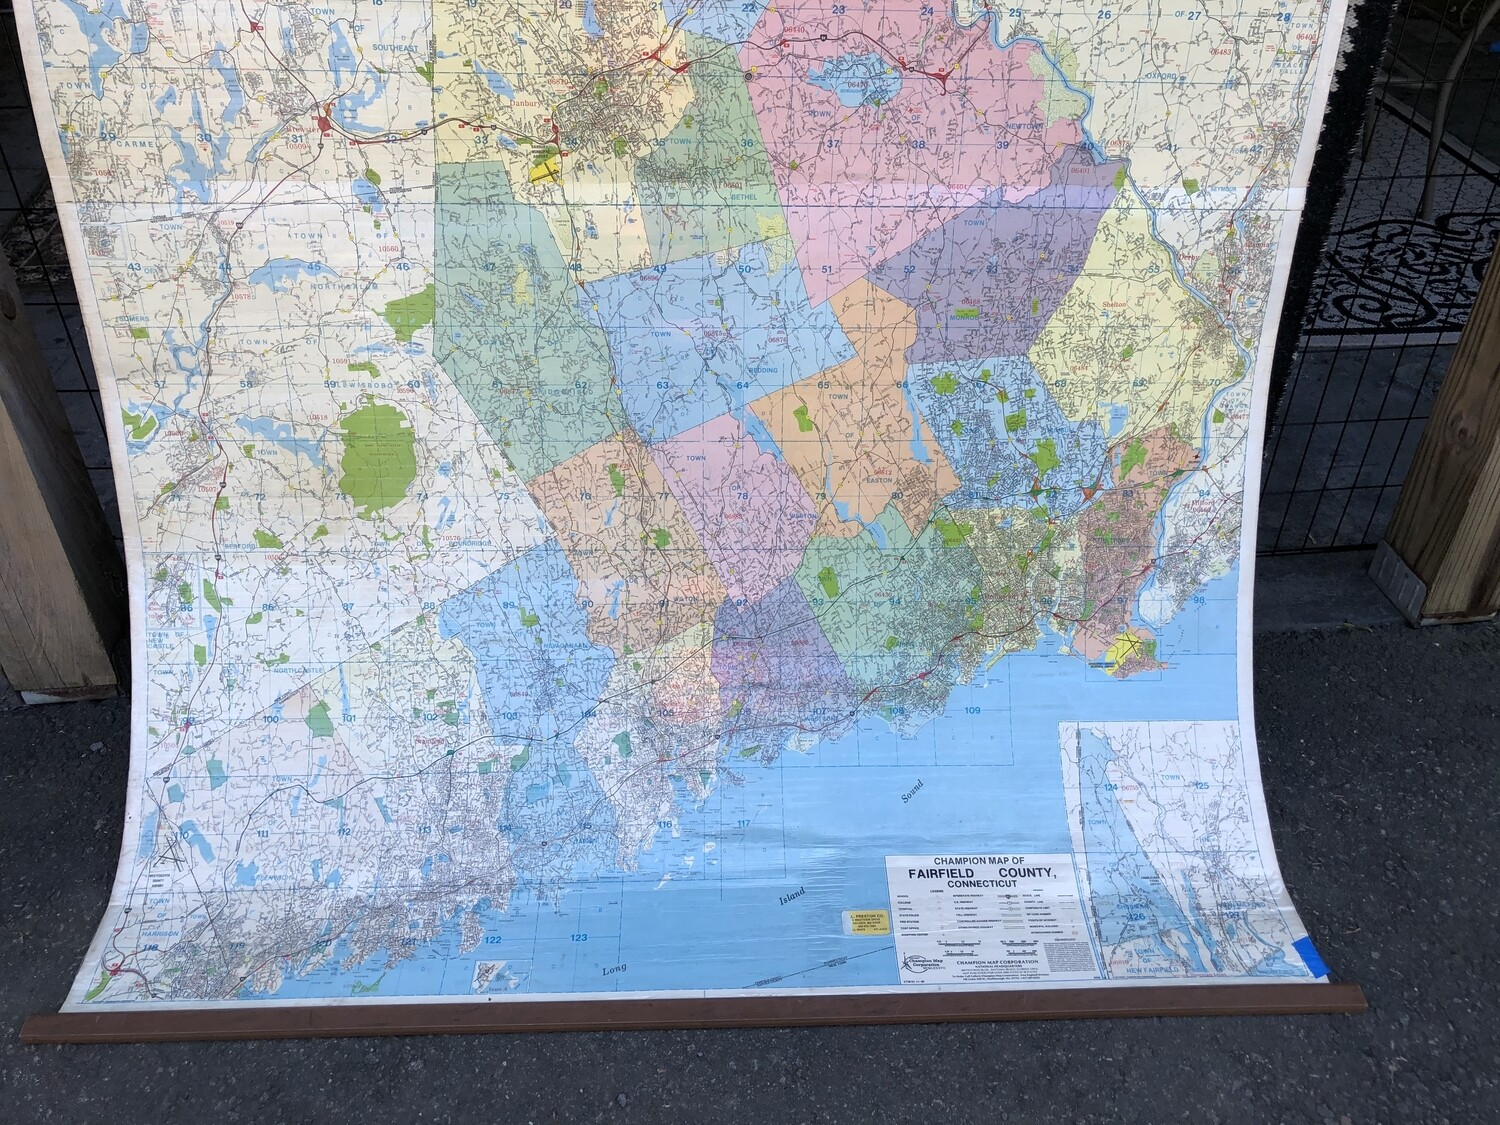 Giant 6ft x 6ft Laminated Schoolhouse Map of Fairfield County, CT